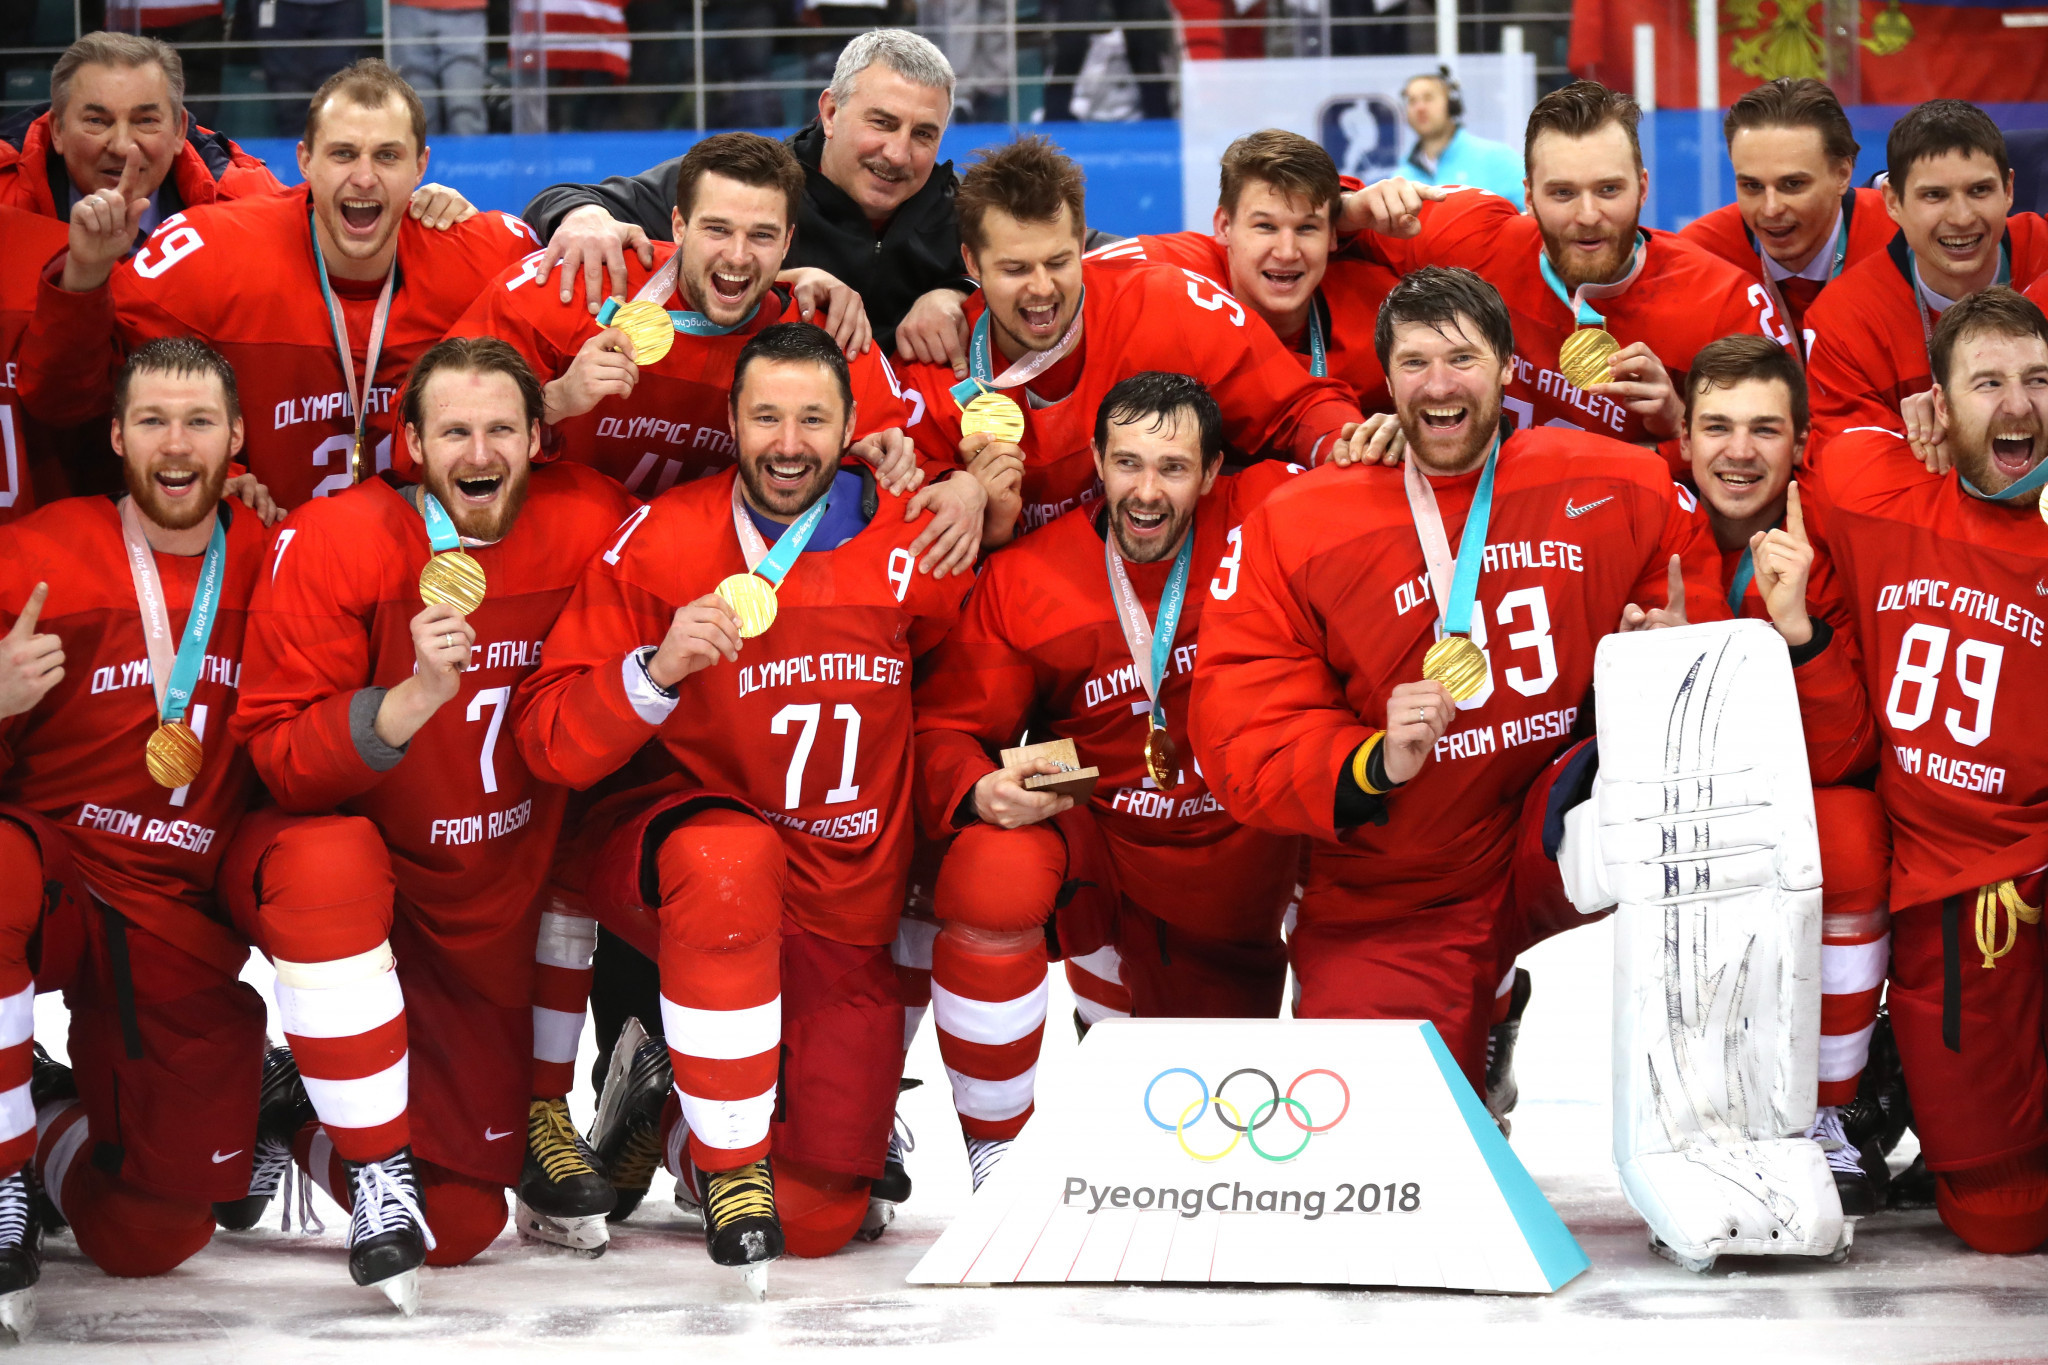 Russia earned Olympic gold in the men's ice hockey contest at Pyeongchang 2018 ©Getty Images